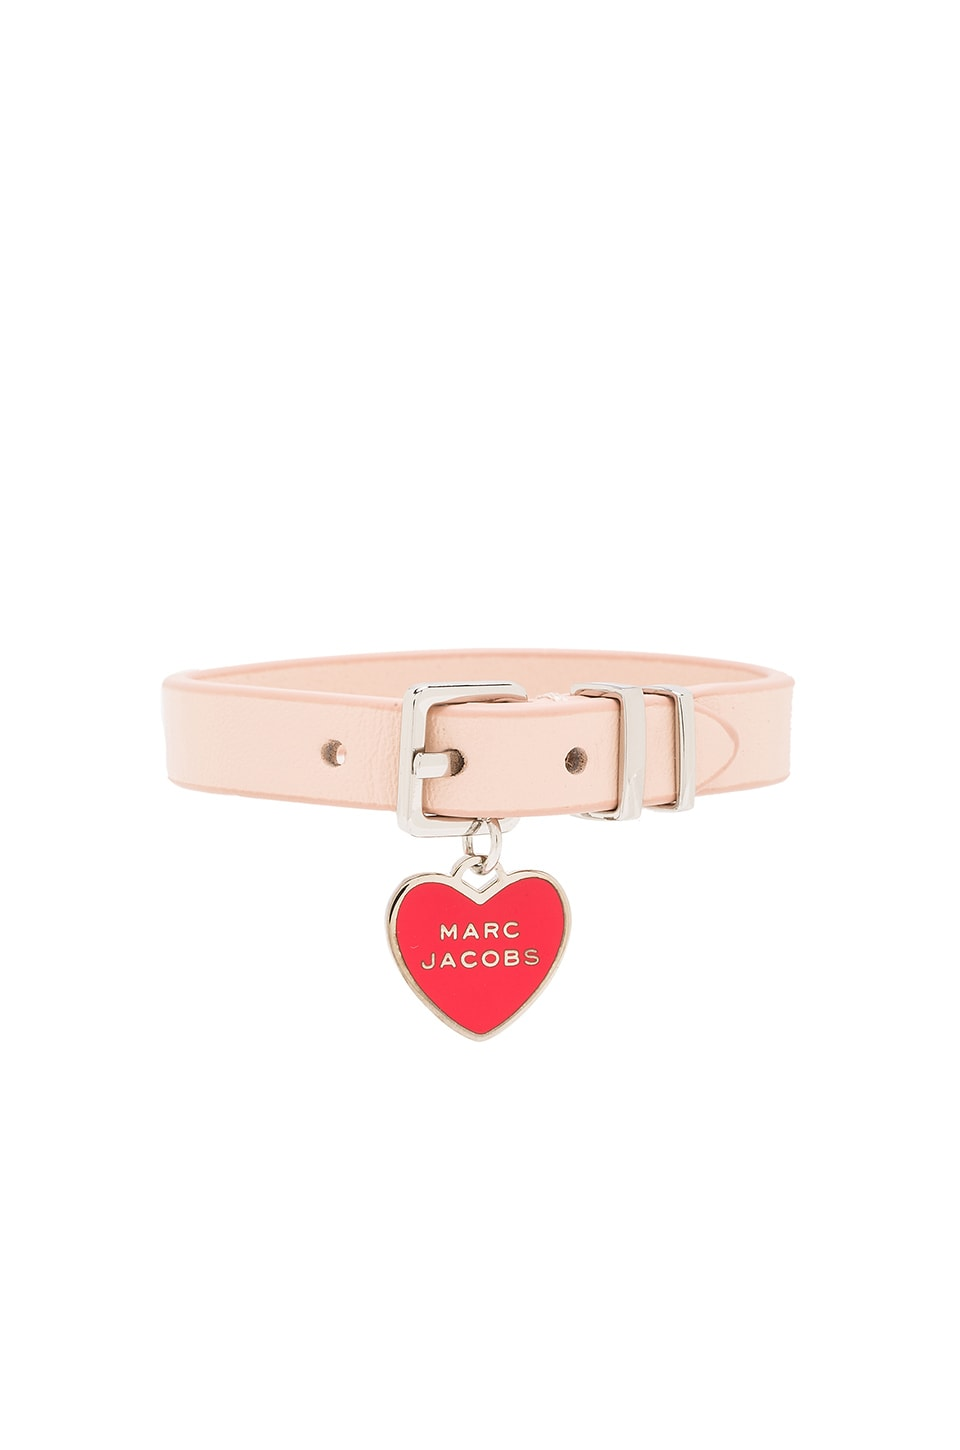 Marc Jacobs Heart Bracelet in Seashell Peach